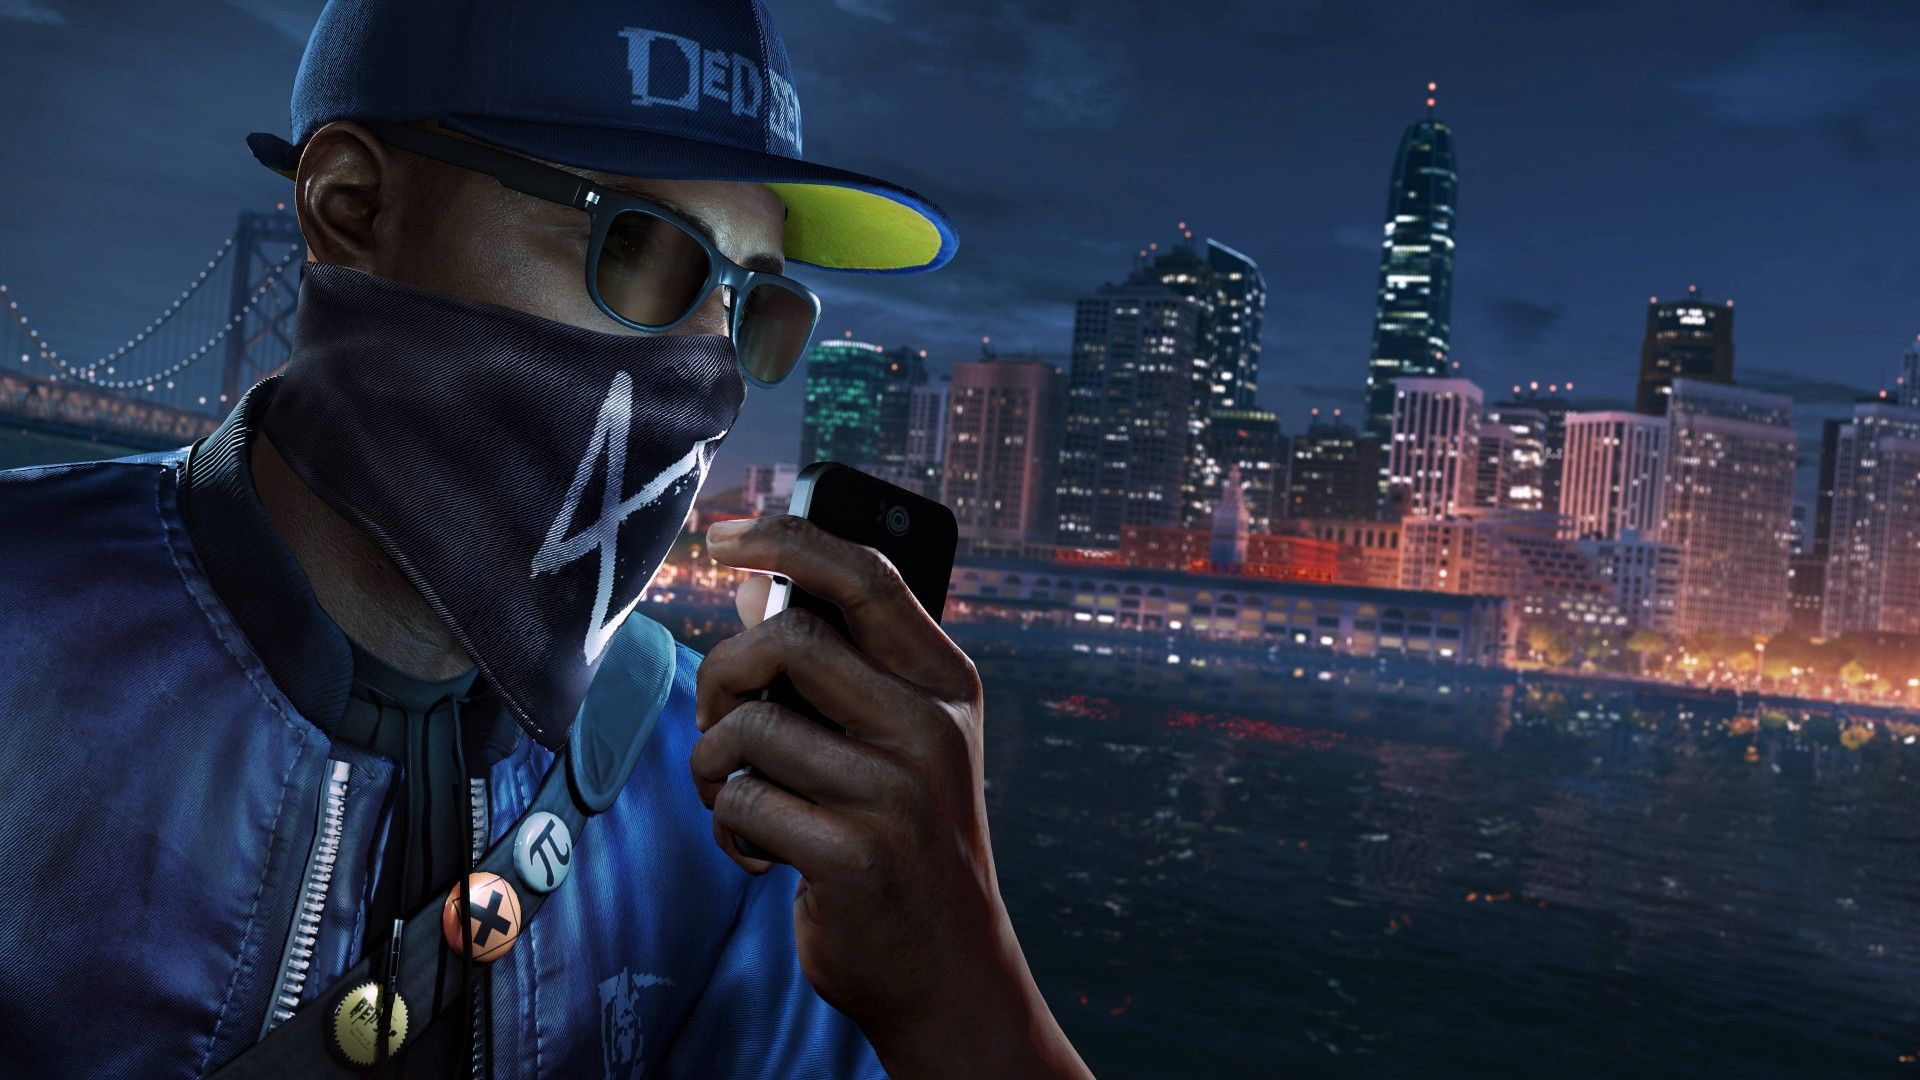 Watch Dogs 2 Marcus Holloway Ps4 Pro 4k Watch Dogs Ps4 Background Tv Online Free